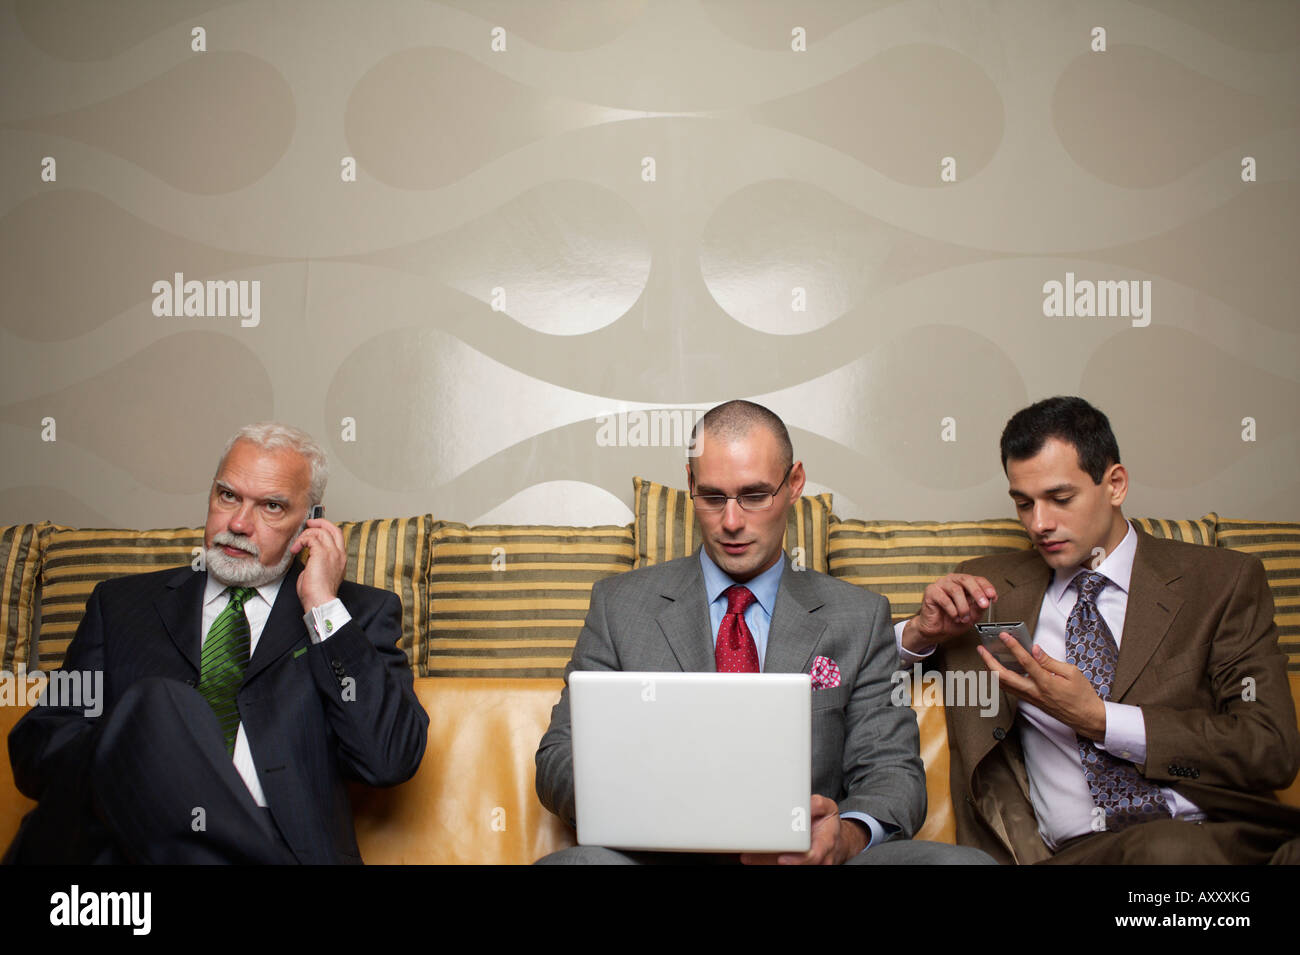 Three businessmen on a sofa with different communication devices - Stock Image